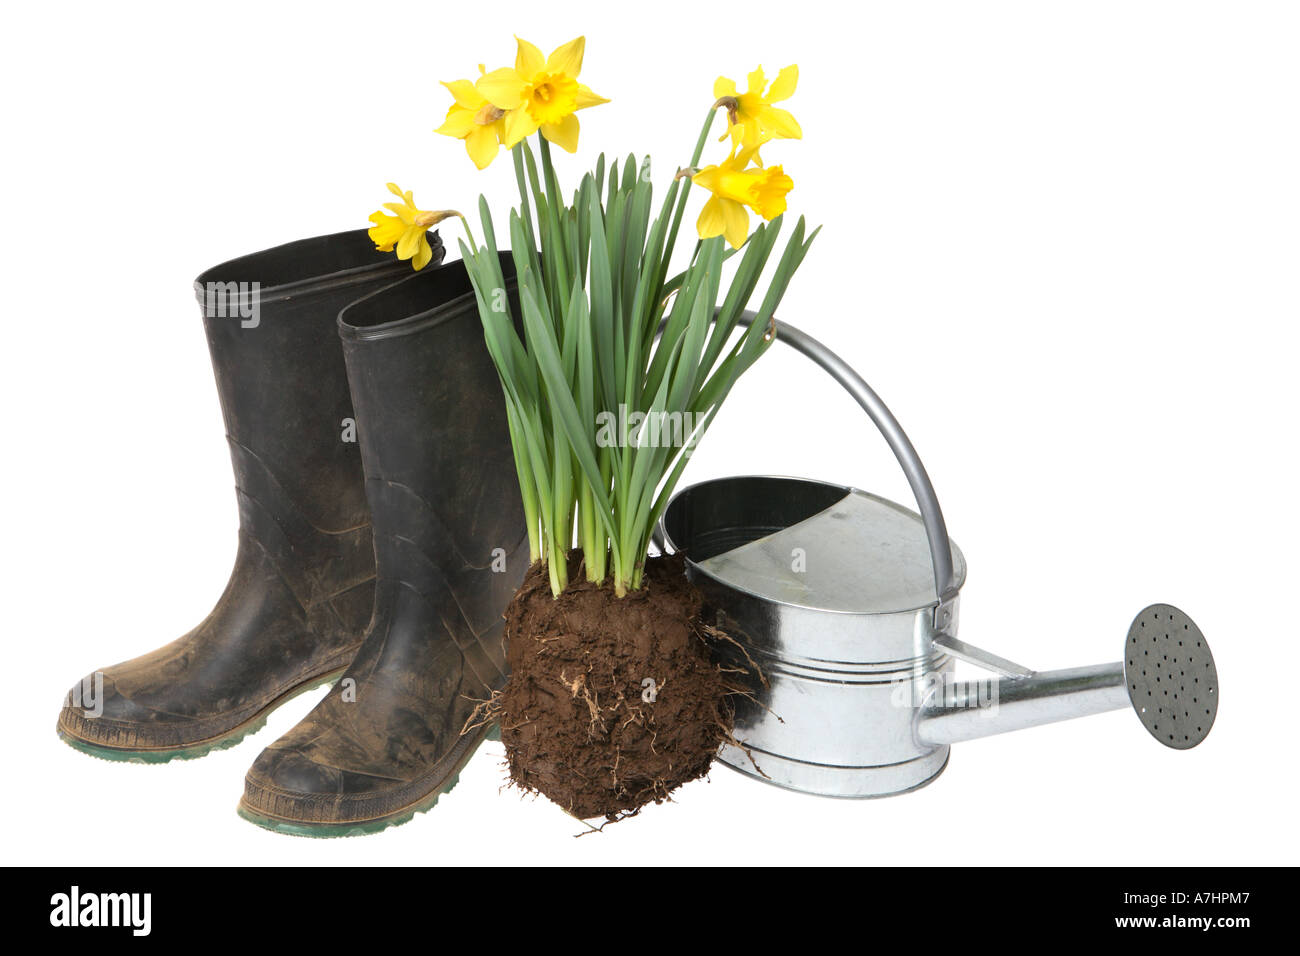 Garden objects; Rubber boots, daffodils and watering can. - Stock Image